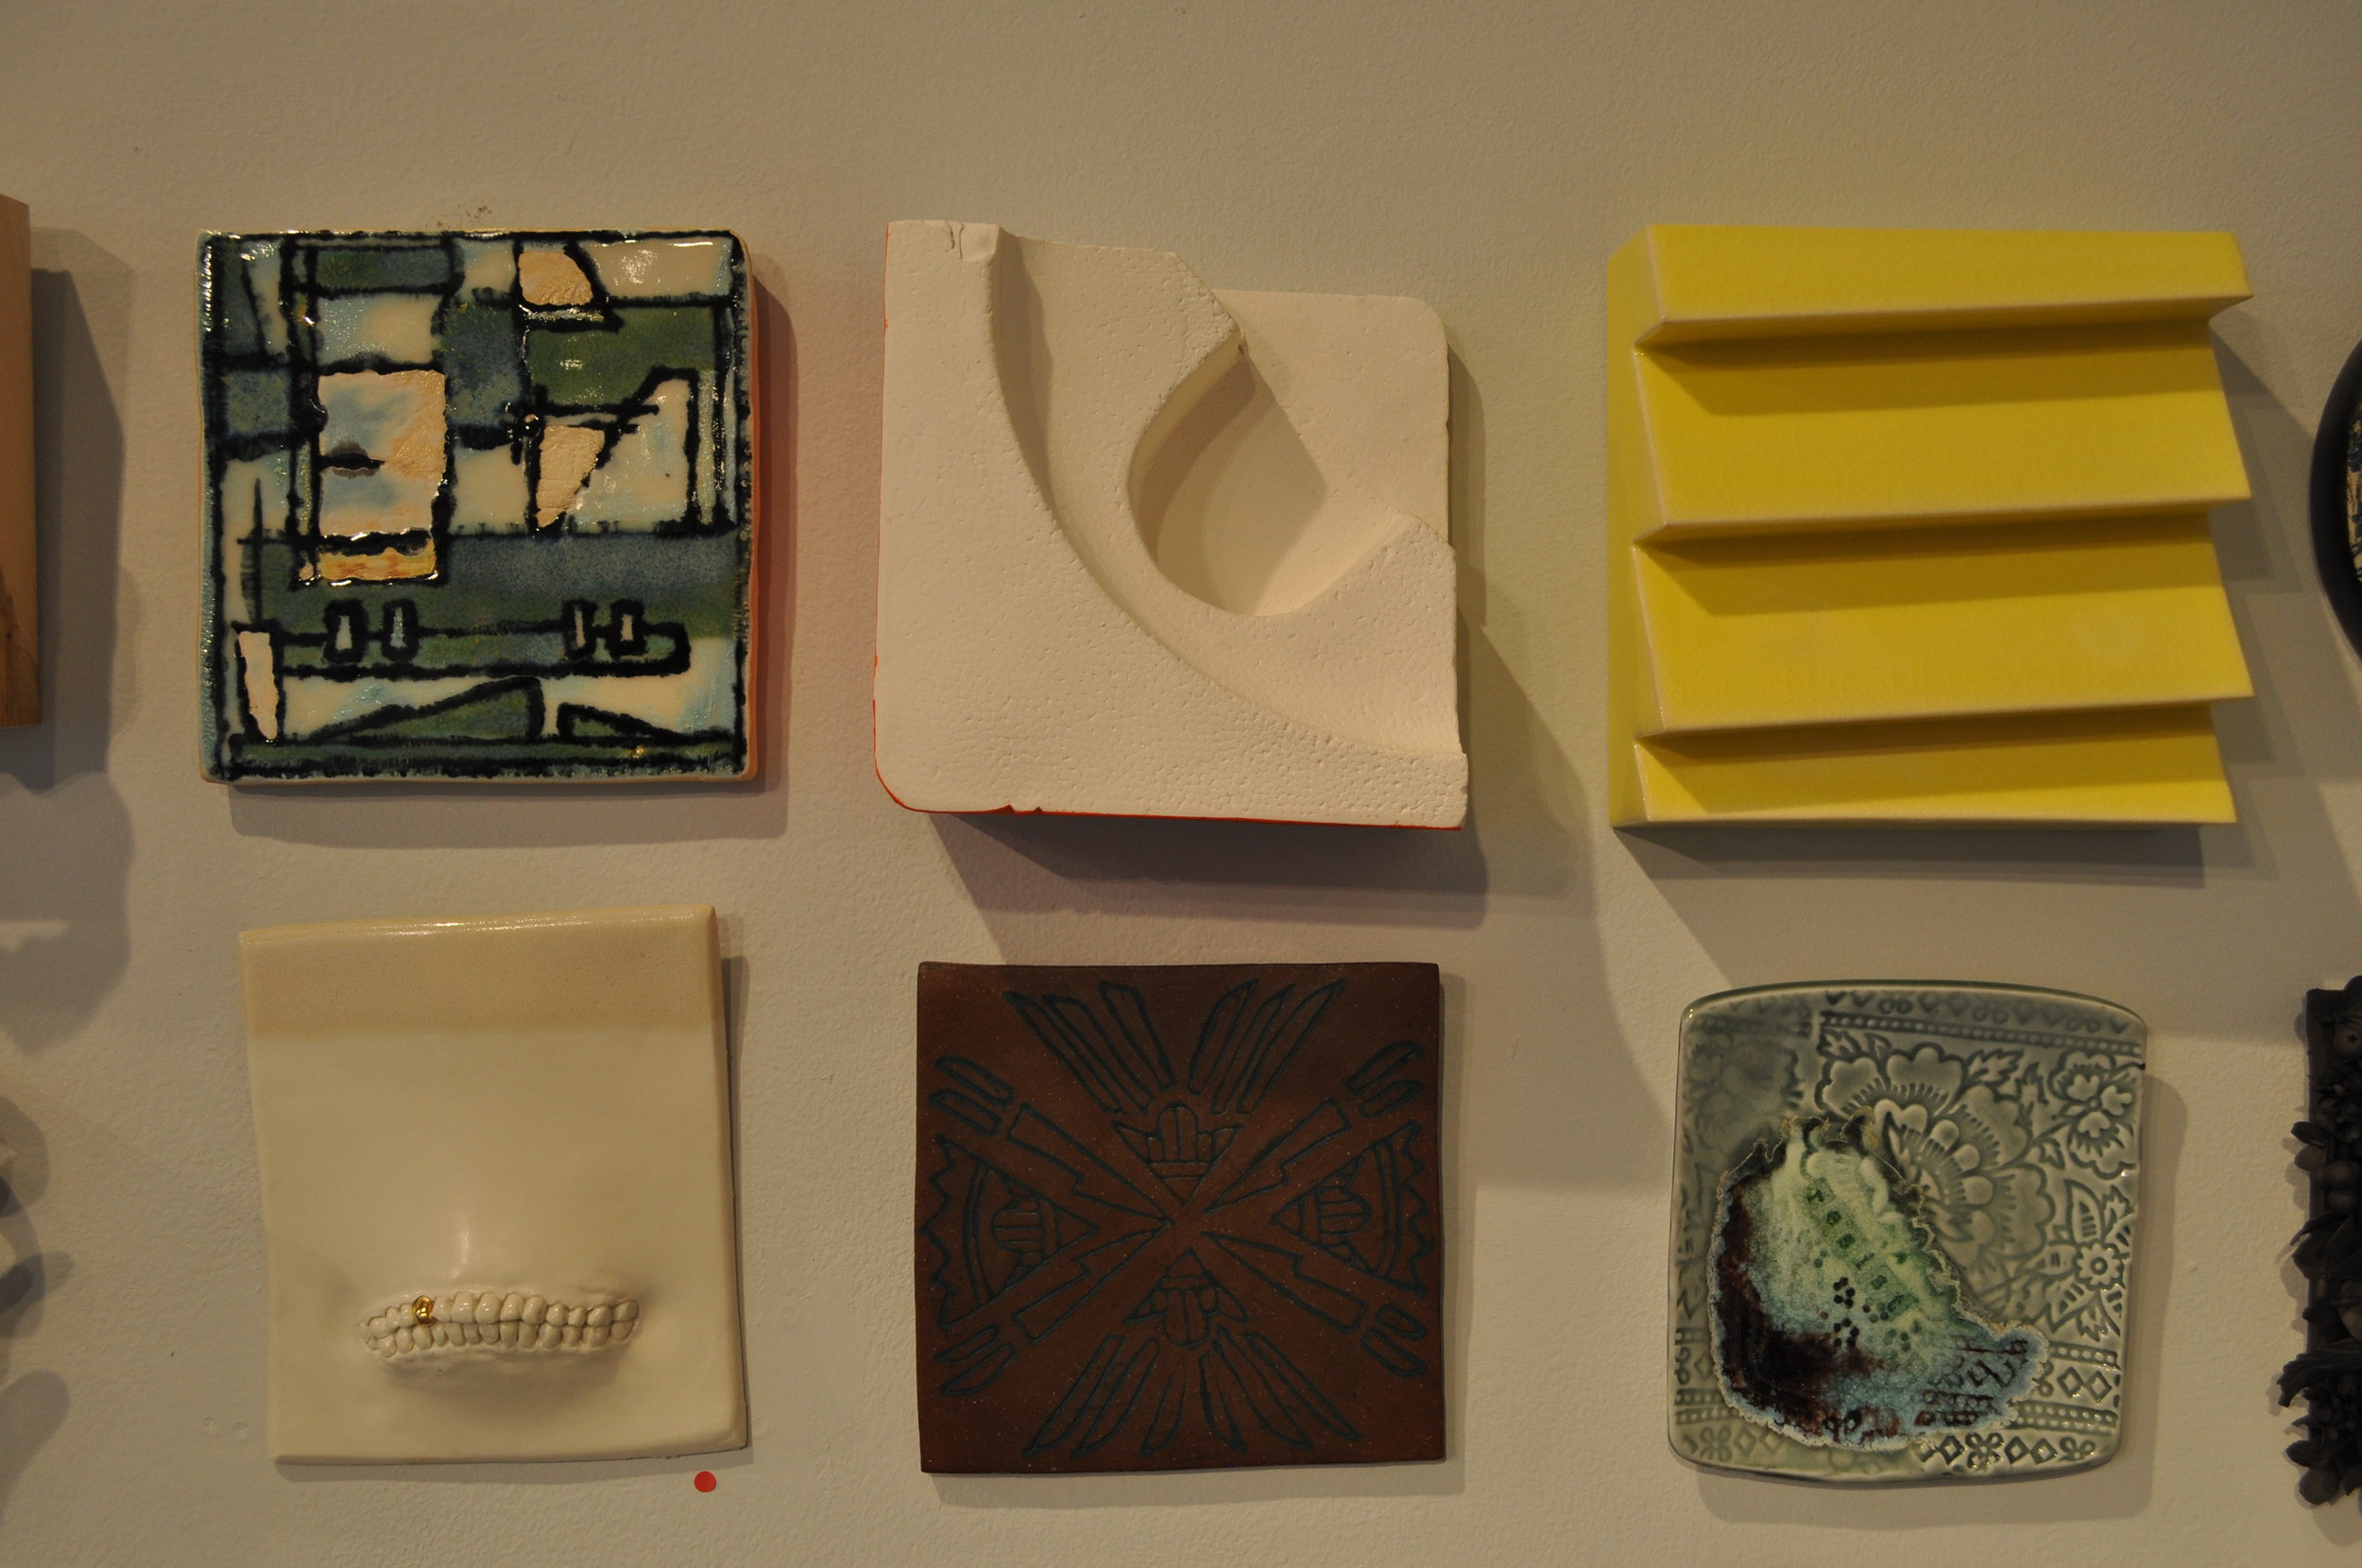 1.  Roni Cohen,  Homage To Mondrain 2  $38  2.  Elenor Wilson,  Construction Foam #3  $150  3.  Jim Lawton,  Yellow Lapstrake Tile 1  $145  4.  Ginny Waters,  Kissing The Lipless 4(square & cream)  (SOLD)  5.  Carol Long,  Arrows Pointing- Fighting Stops  $50  6.  Karen Ford,  Resist 1  $85